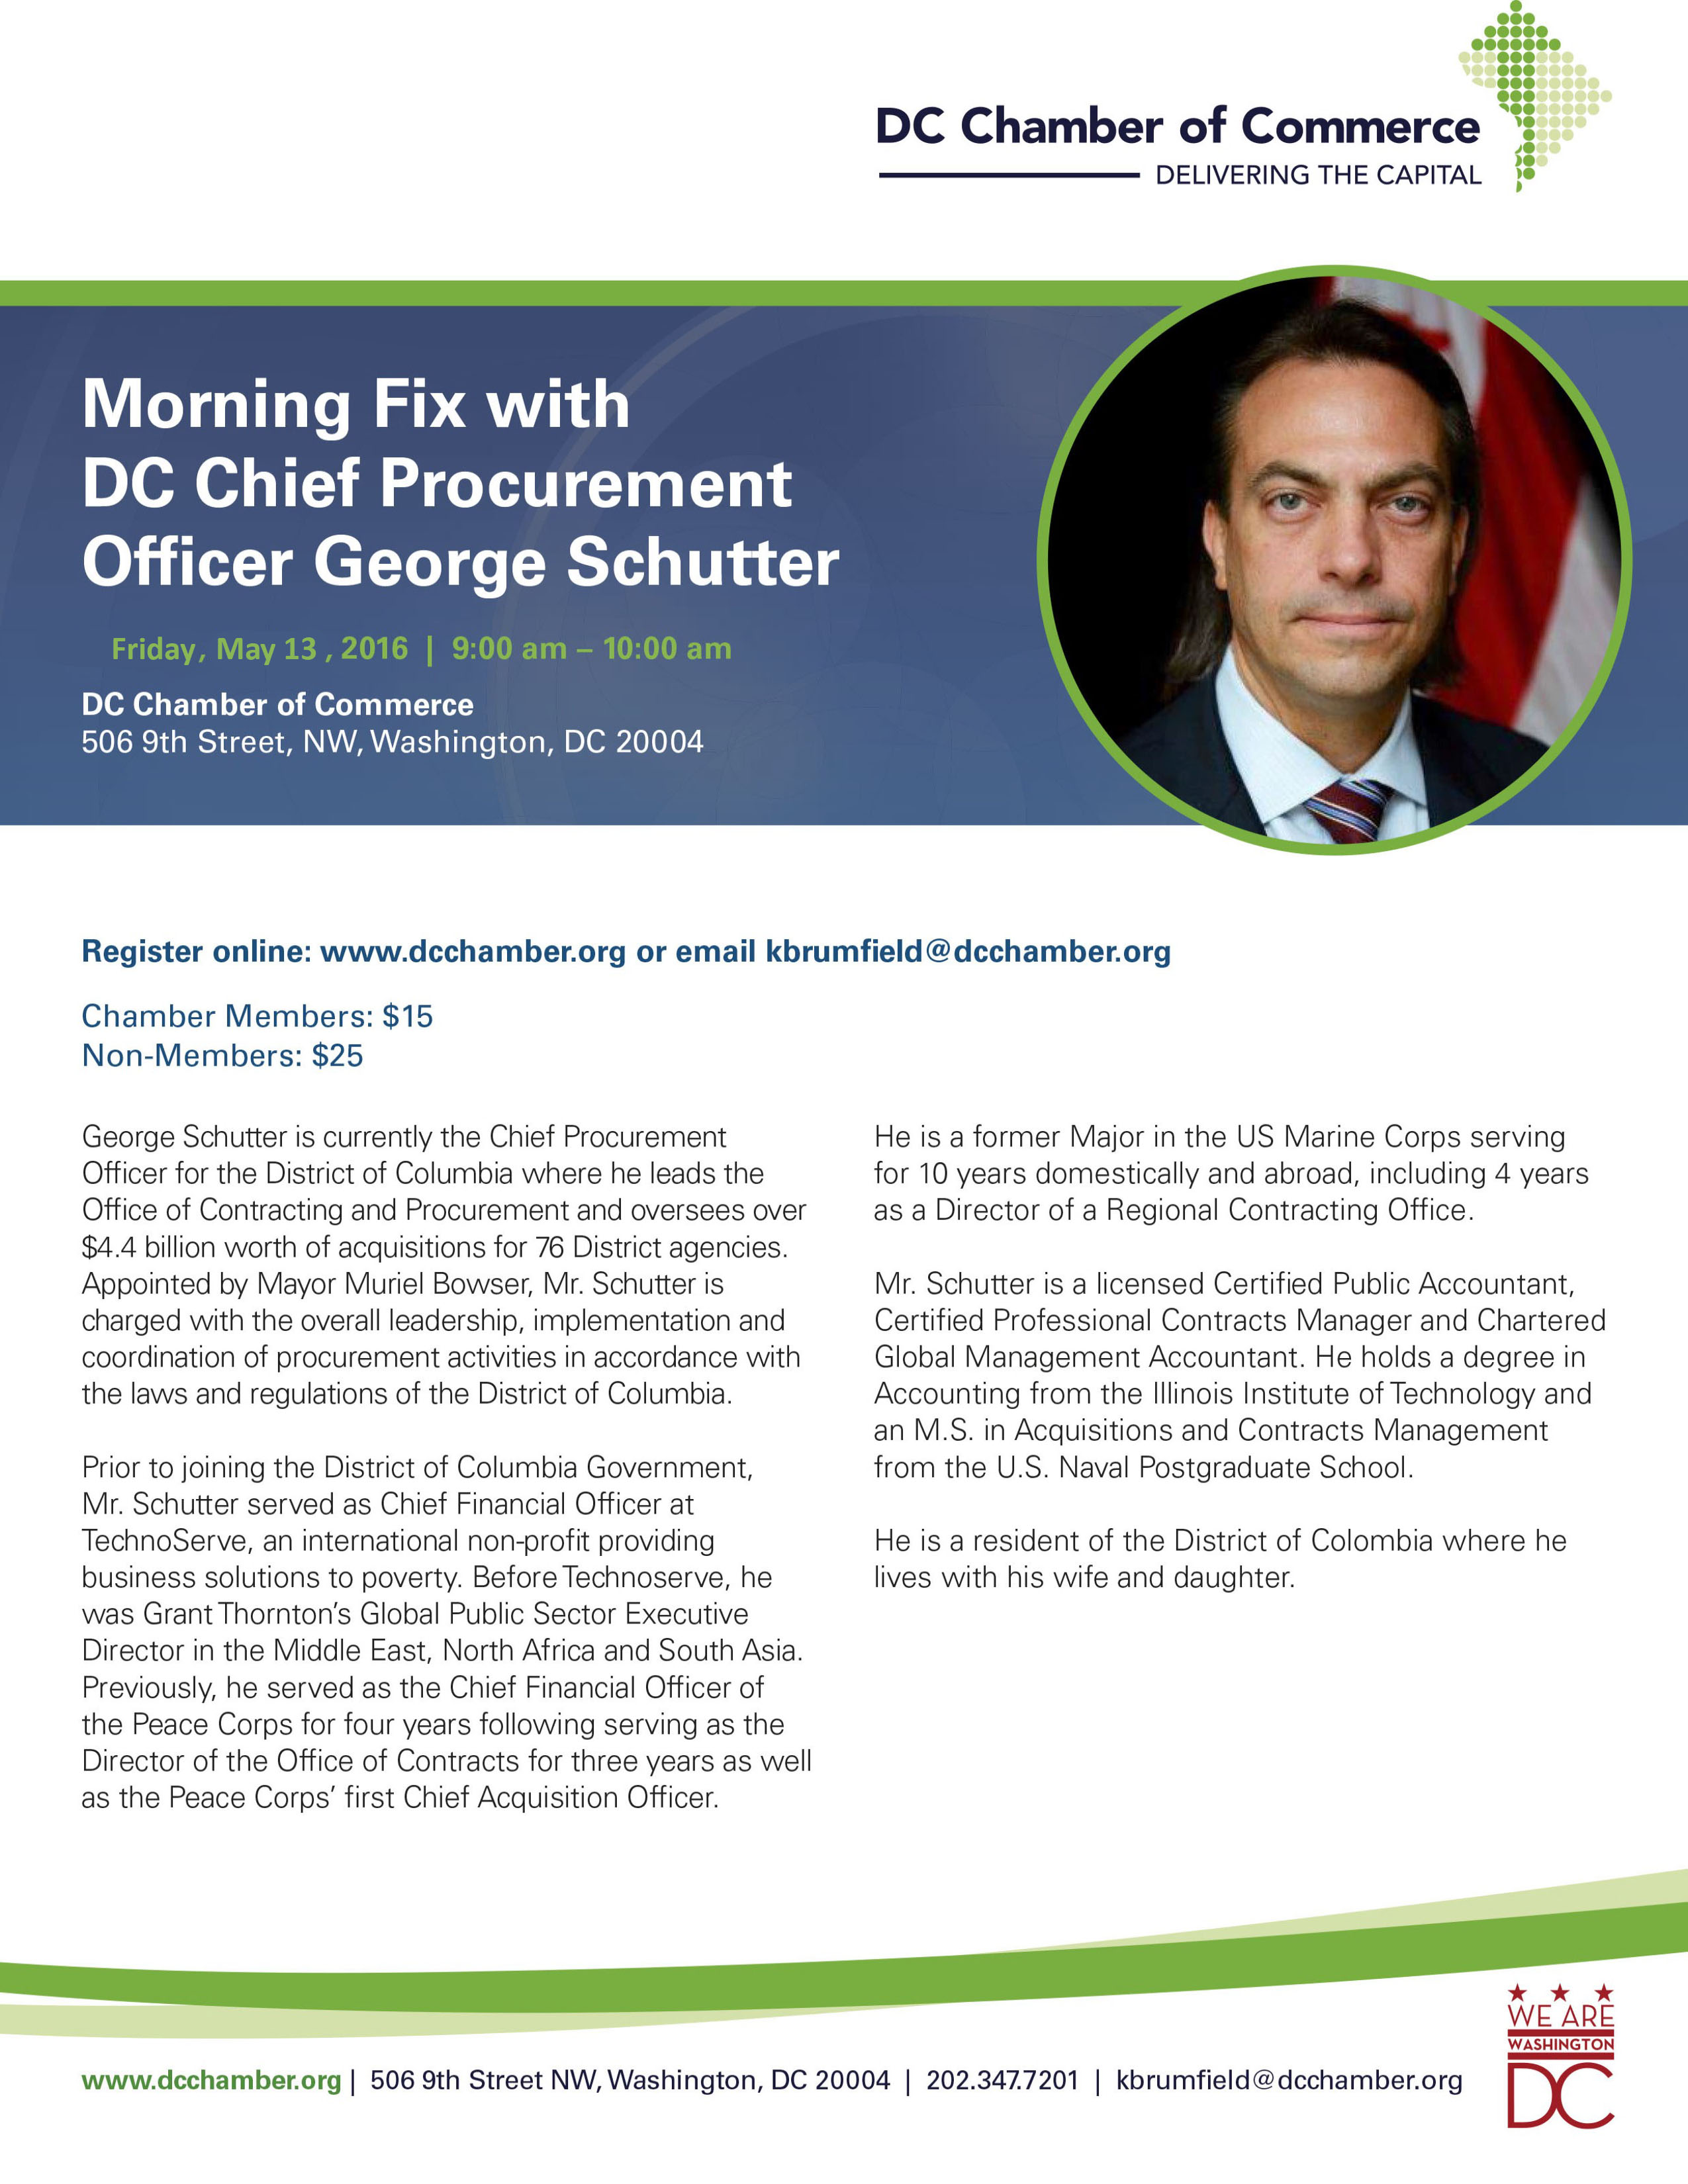 Morning Fix with DC Chief Procurement Officer George Schutter @ DC Chamber of Commerce | Washington | District of Columbia | United States